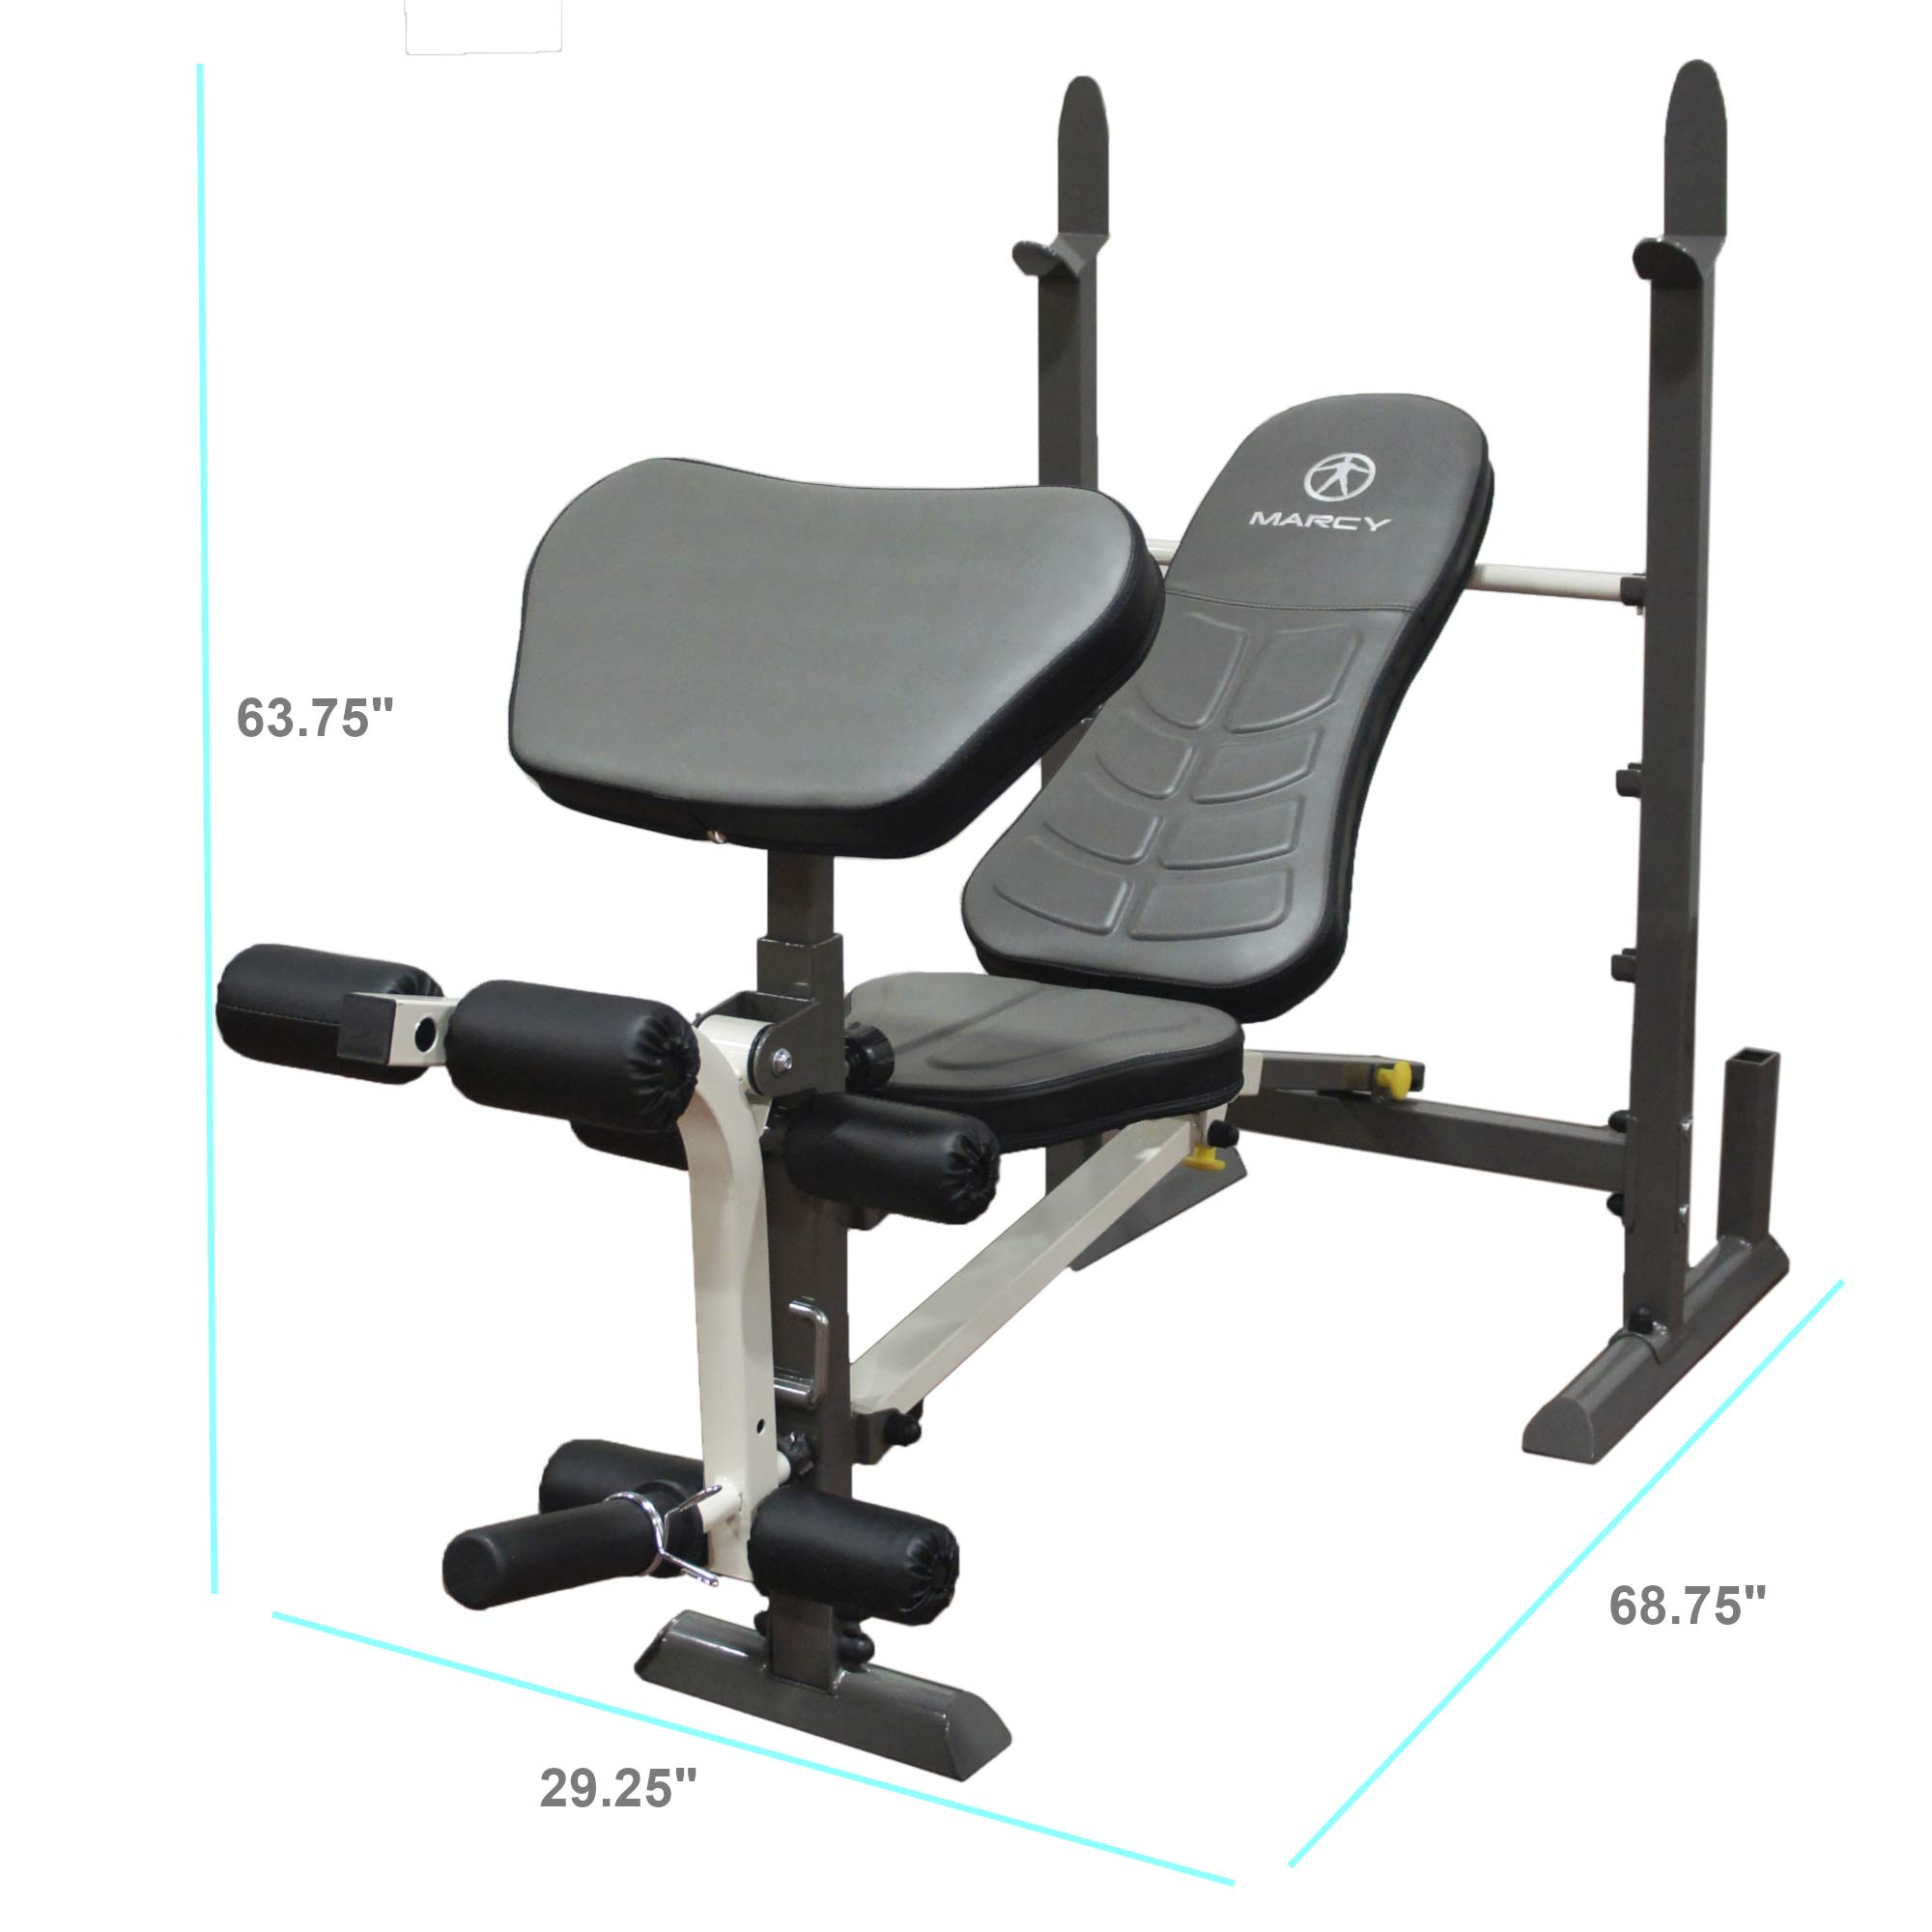 Marcy Folding Standard Weight Bench – Easy Storage MWB-20100 by Marcy (Image #3)